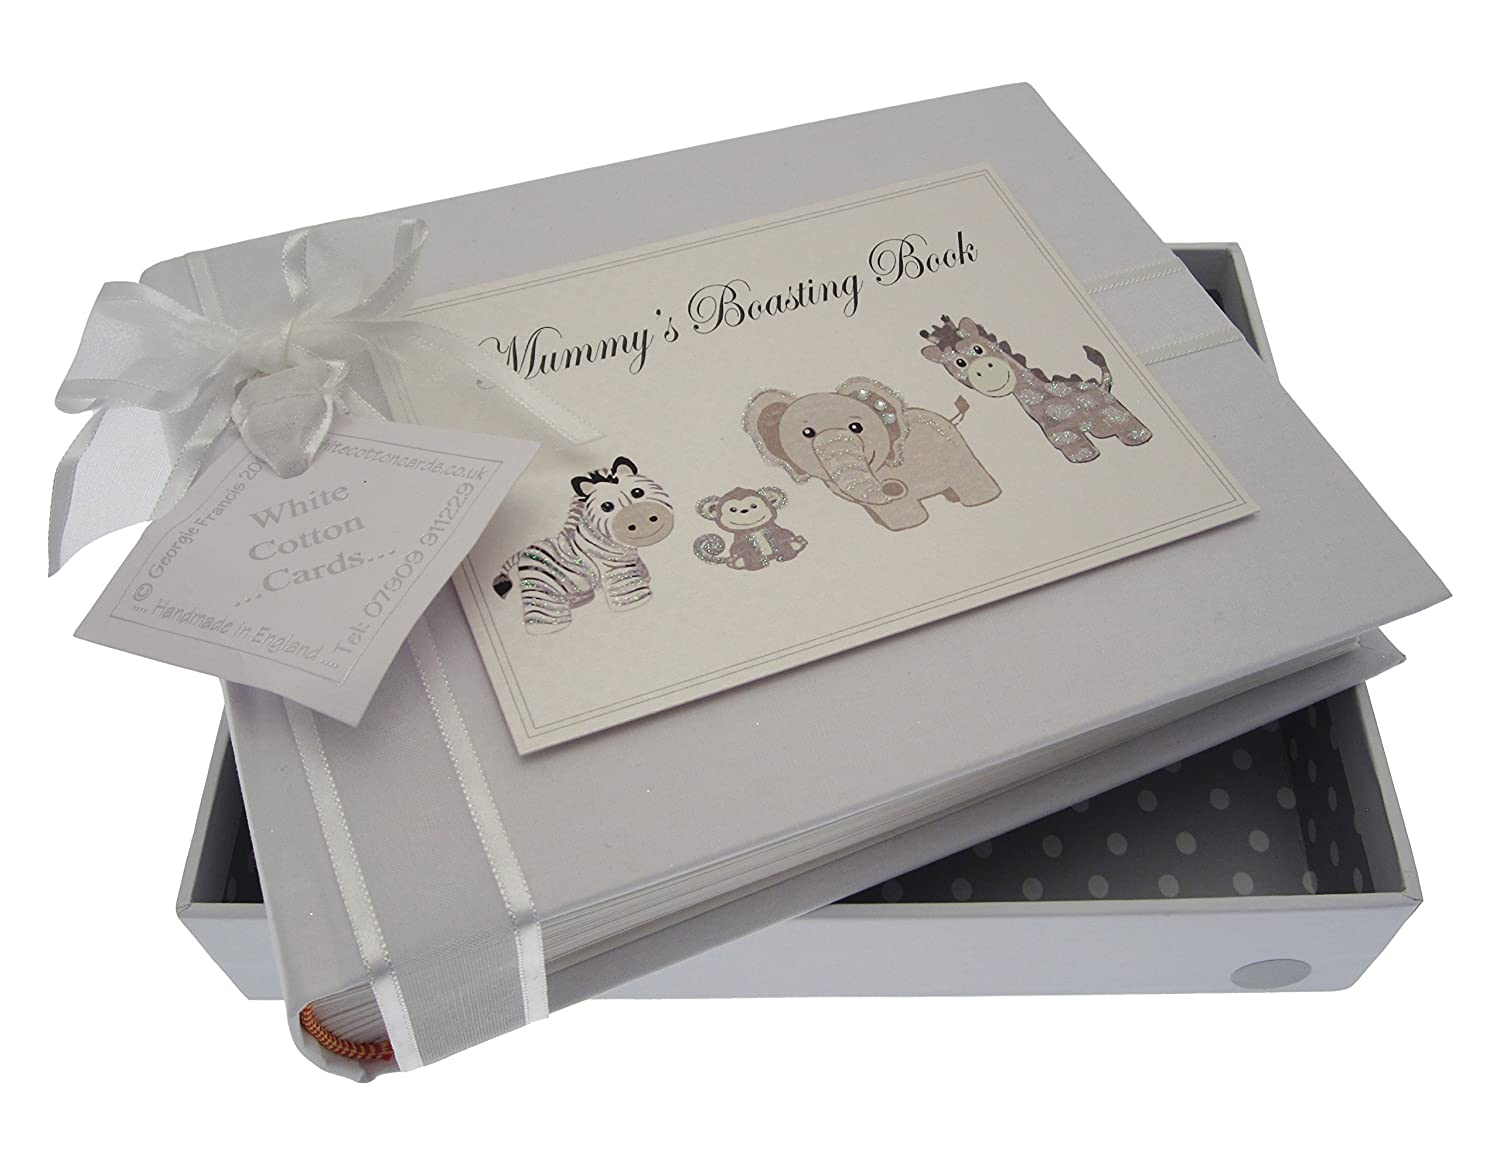 White Cotton Cards Silver Toys Mummy's Boasting Book Album (Small) TS6S